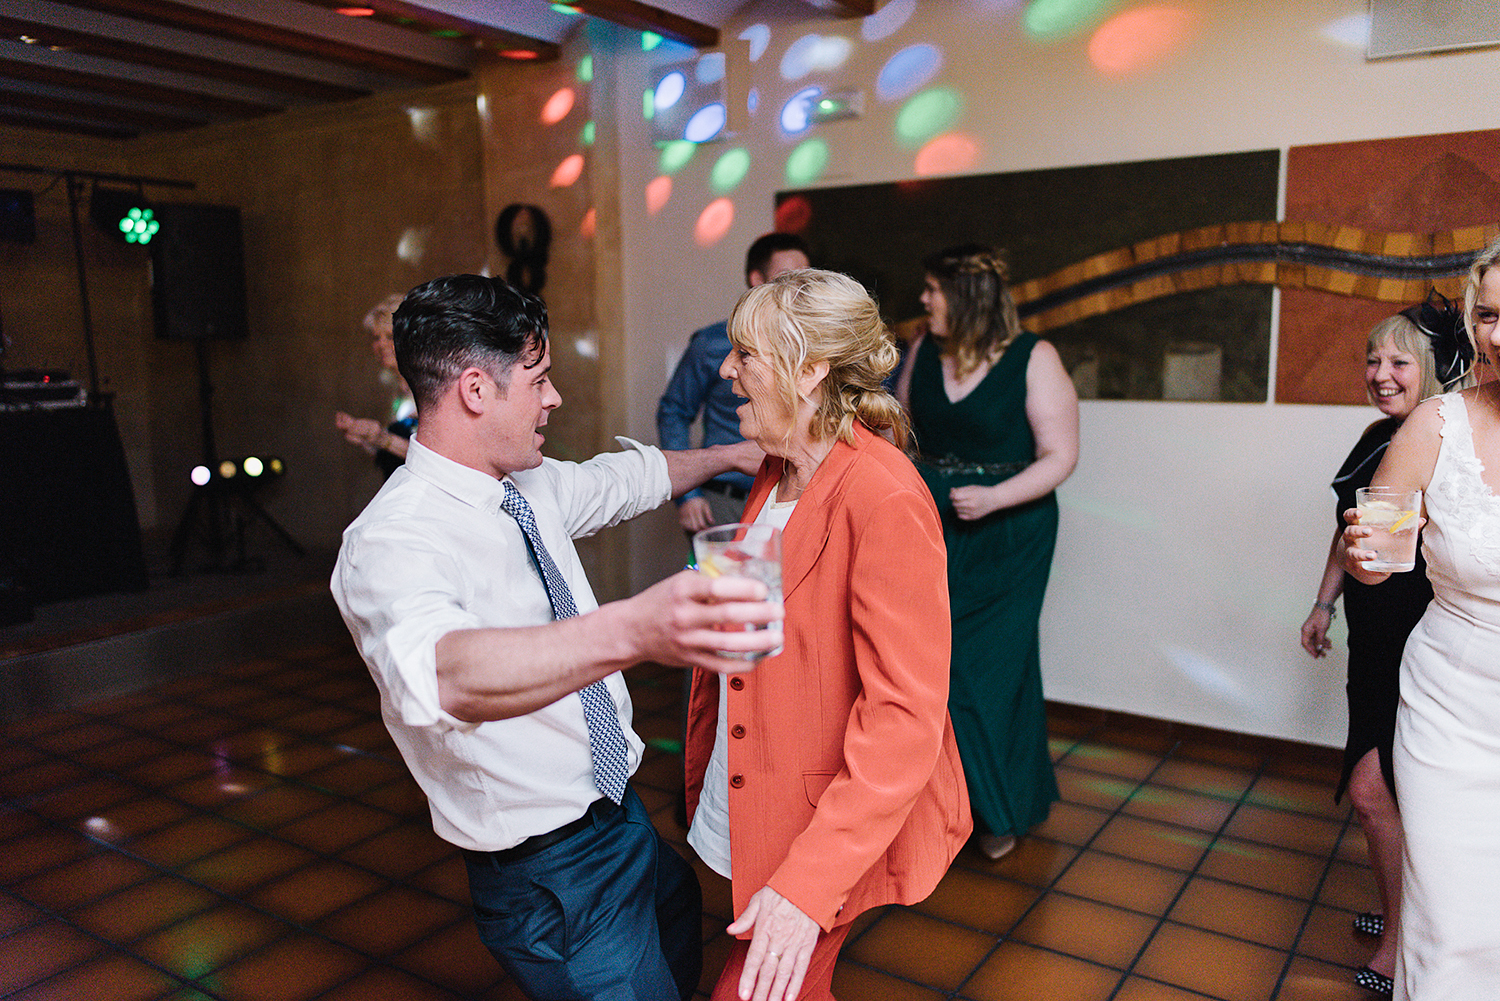 destination-wedding-photographer-from-toronto-ryanne-hollies-photography-documentary-editorial-style-toronto-wedding-photographer-junebug-weddings-reception-partying-wedding-guests-dancing-goofy-candid-moments-hilarious.jpg